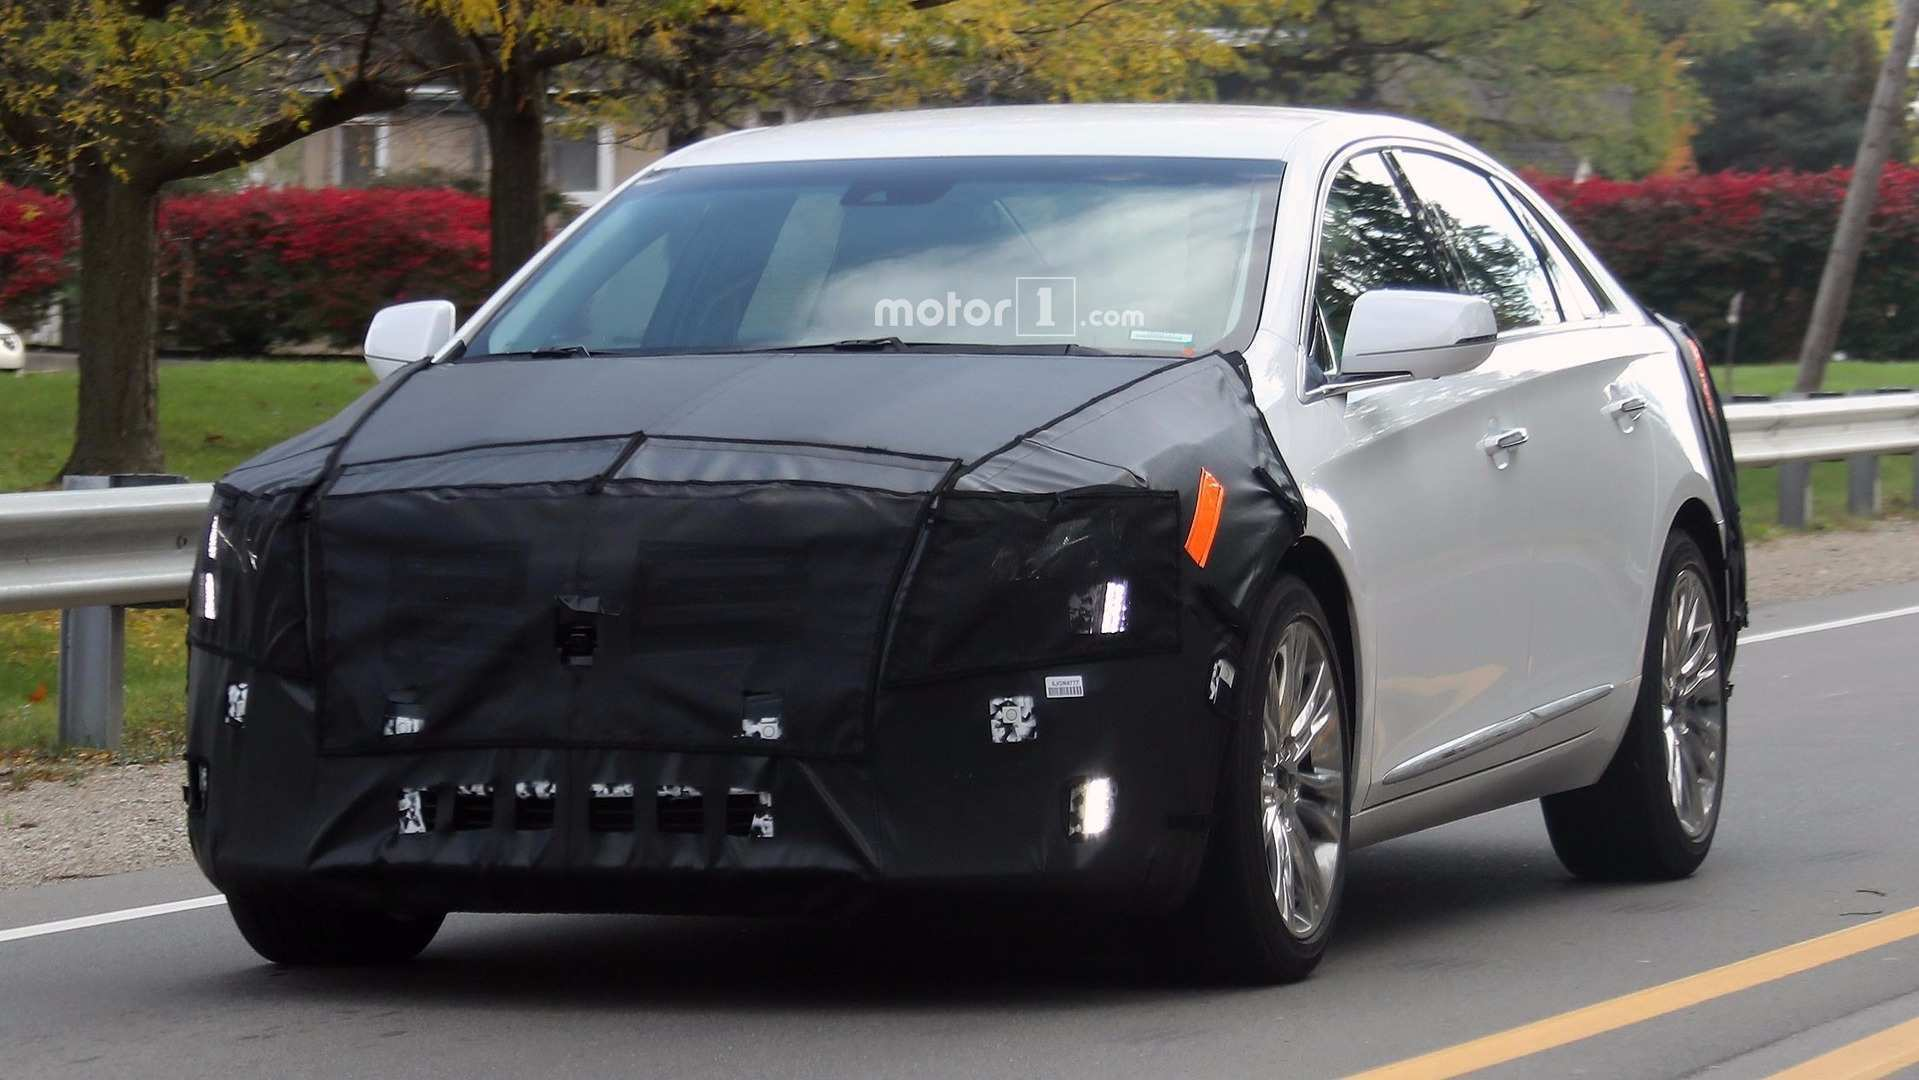 38 New Spy Shots Cadillac Xt5 Redesign And Concept